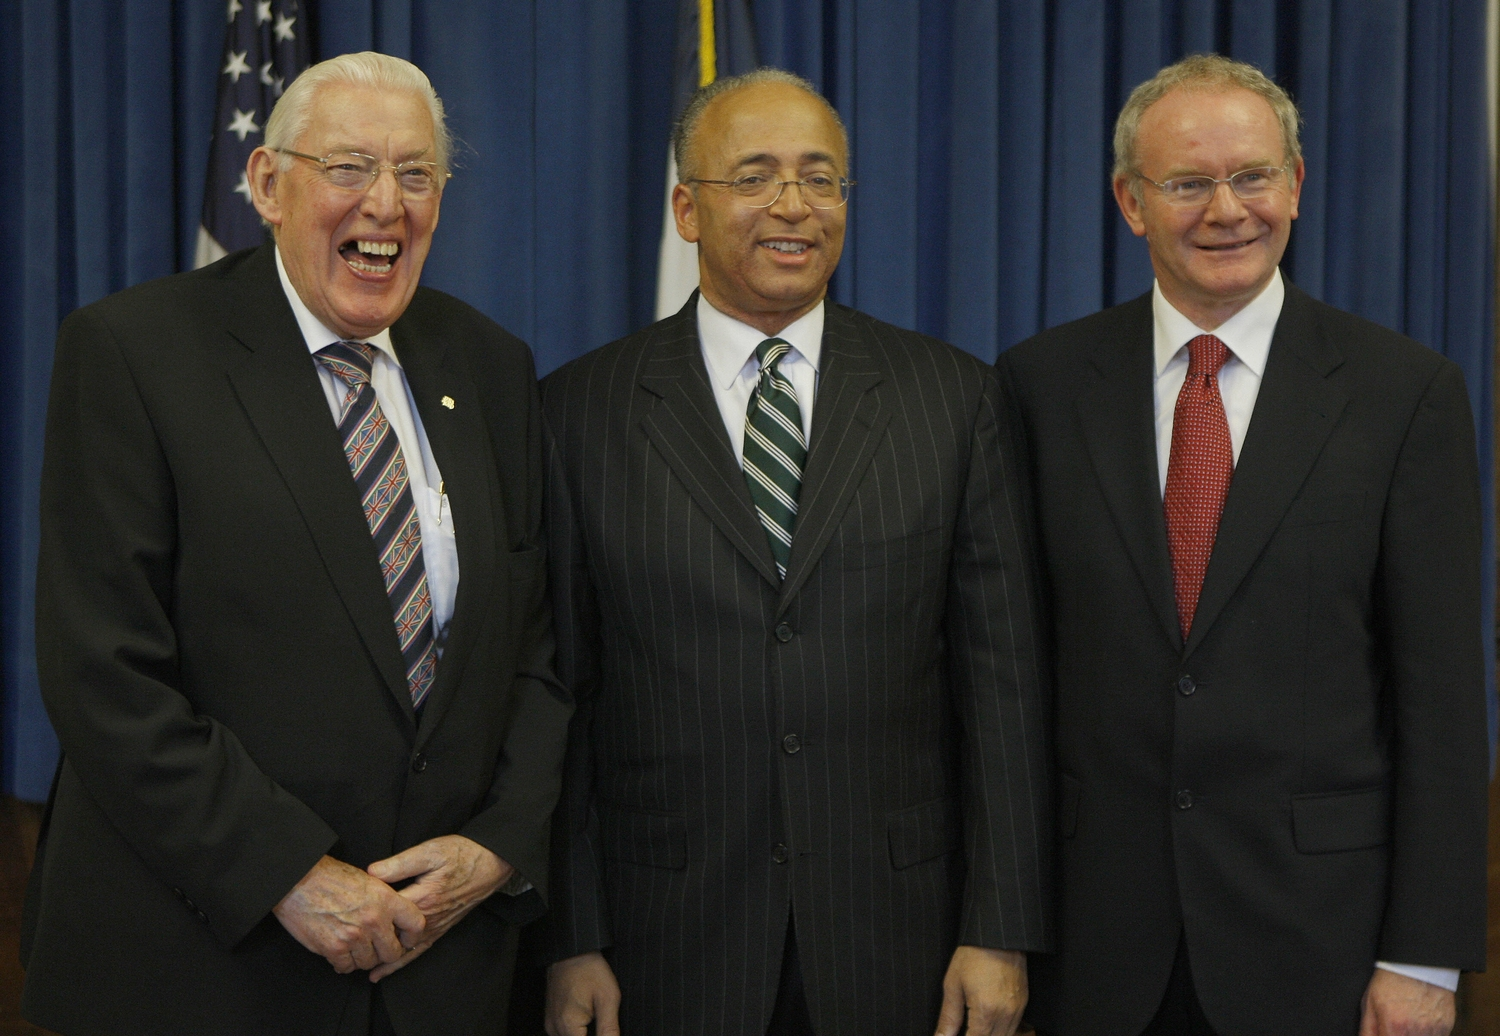 Ian Paisley and Martin McGuinness with New York comptroller